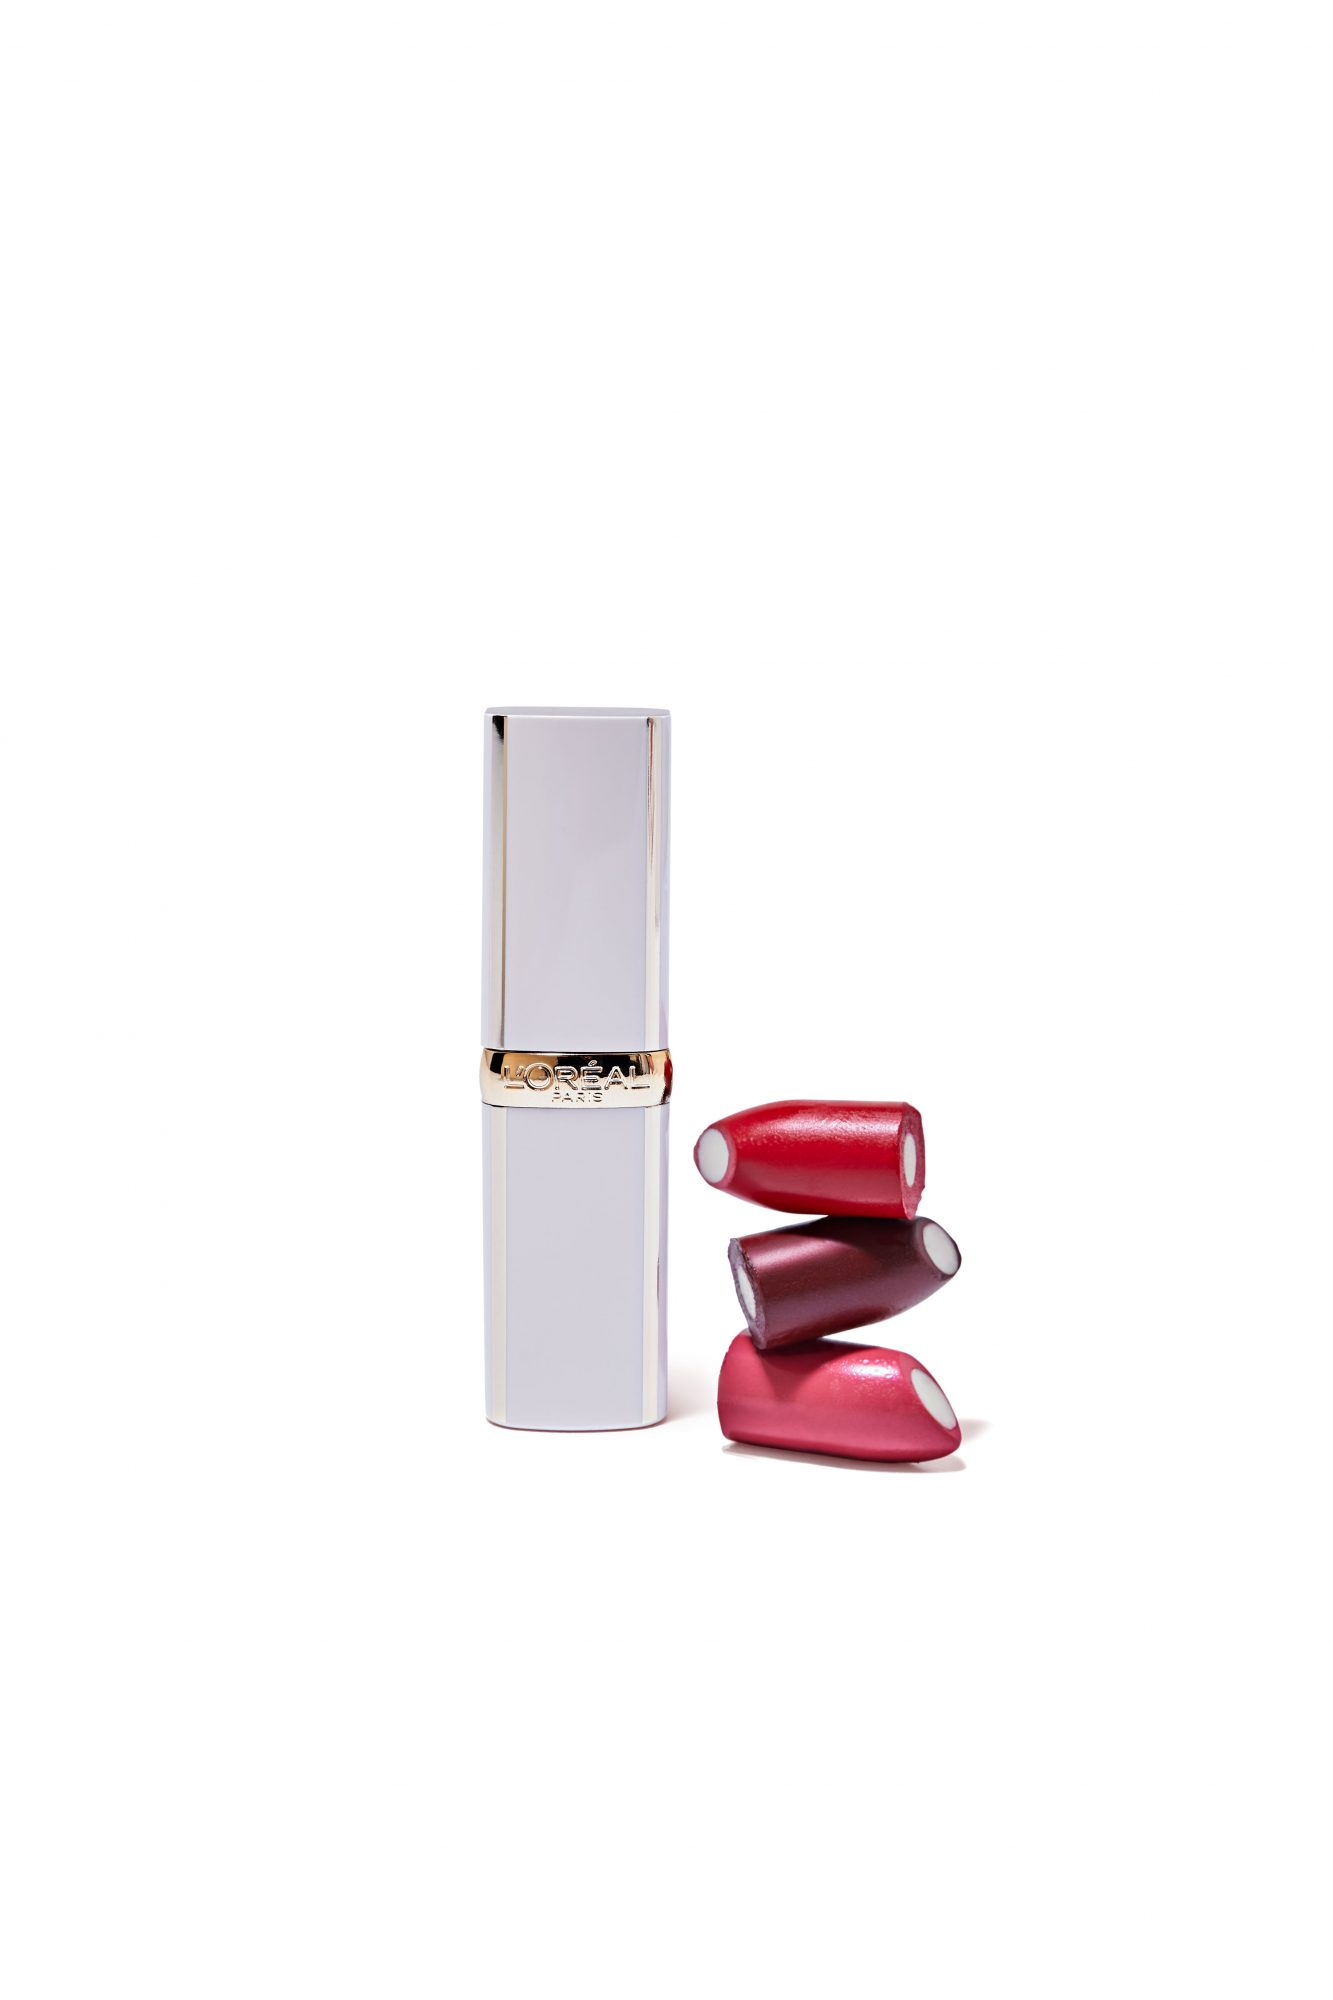 L'Oréal Paris Age Perfect Luminous Hydrating Lipstick + Nourishing Serum